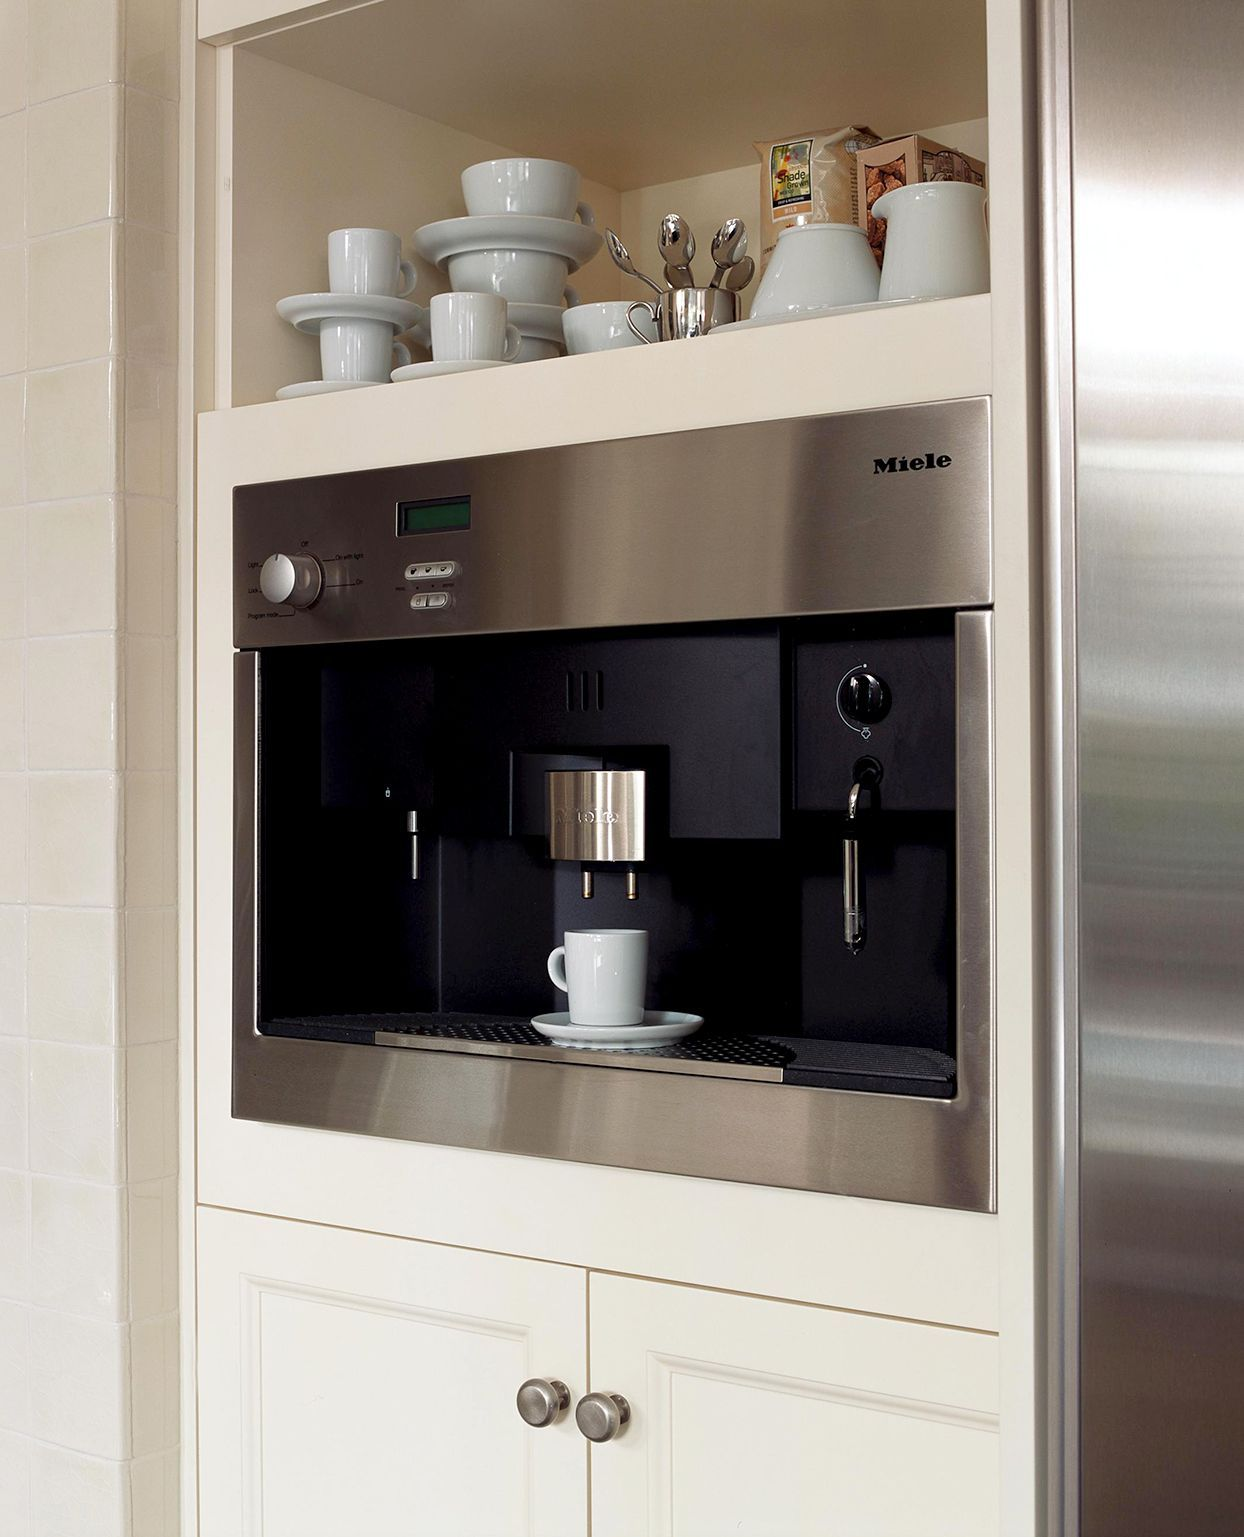 23 Home Coffee Stations For The Ultimate Cafe Experience Home Coffee Stations Miele Coffee Machine Coffee Station [ 1537 x 1244 Pixel ]